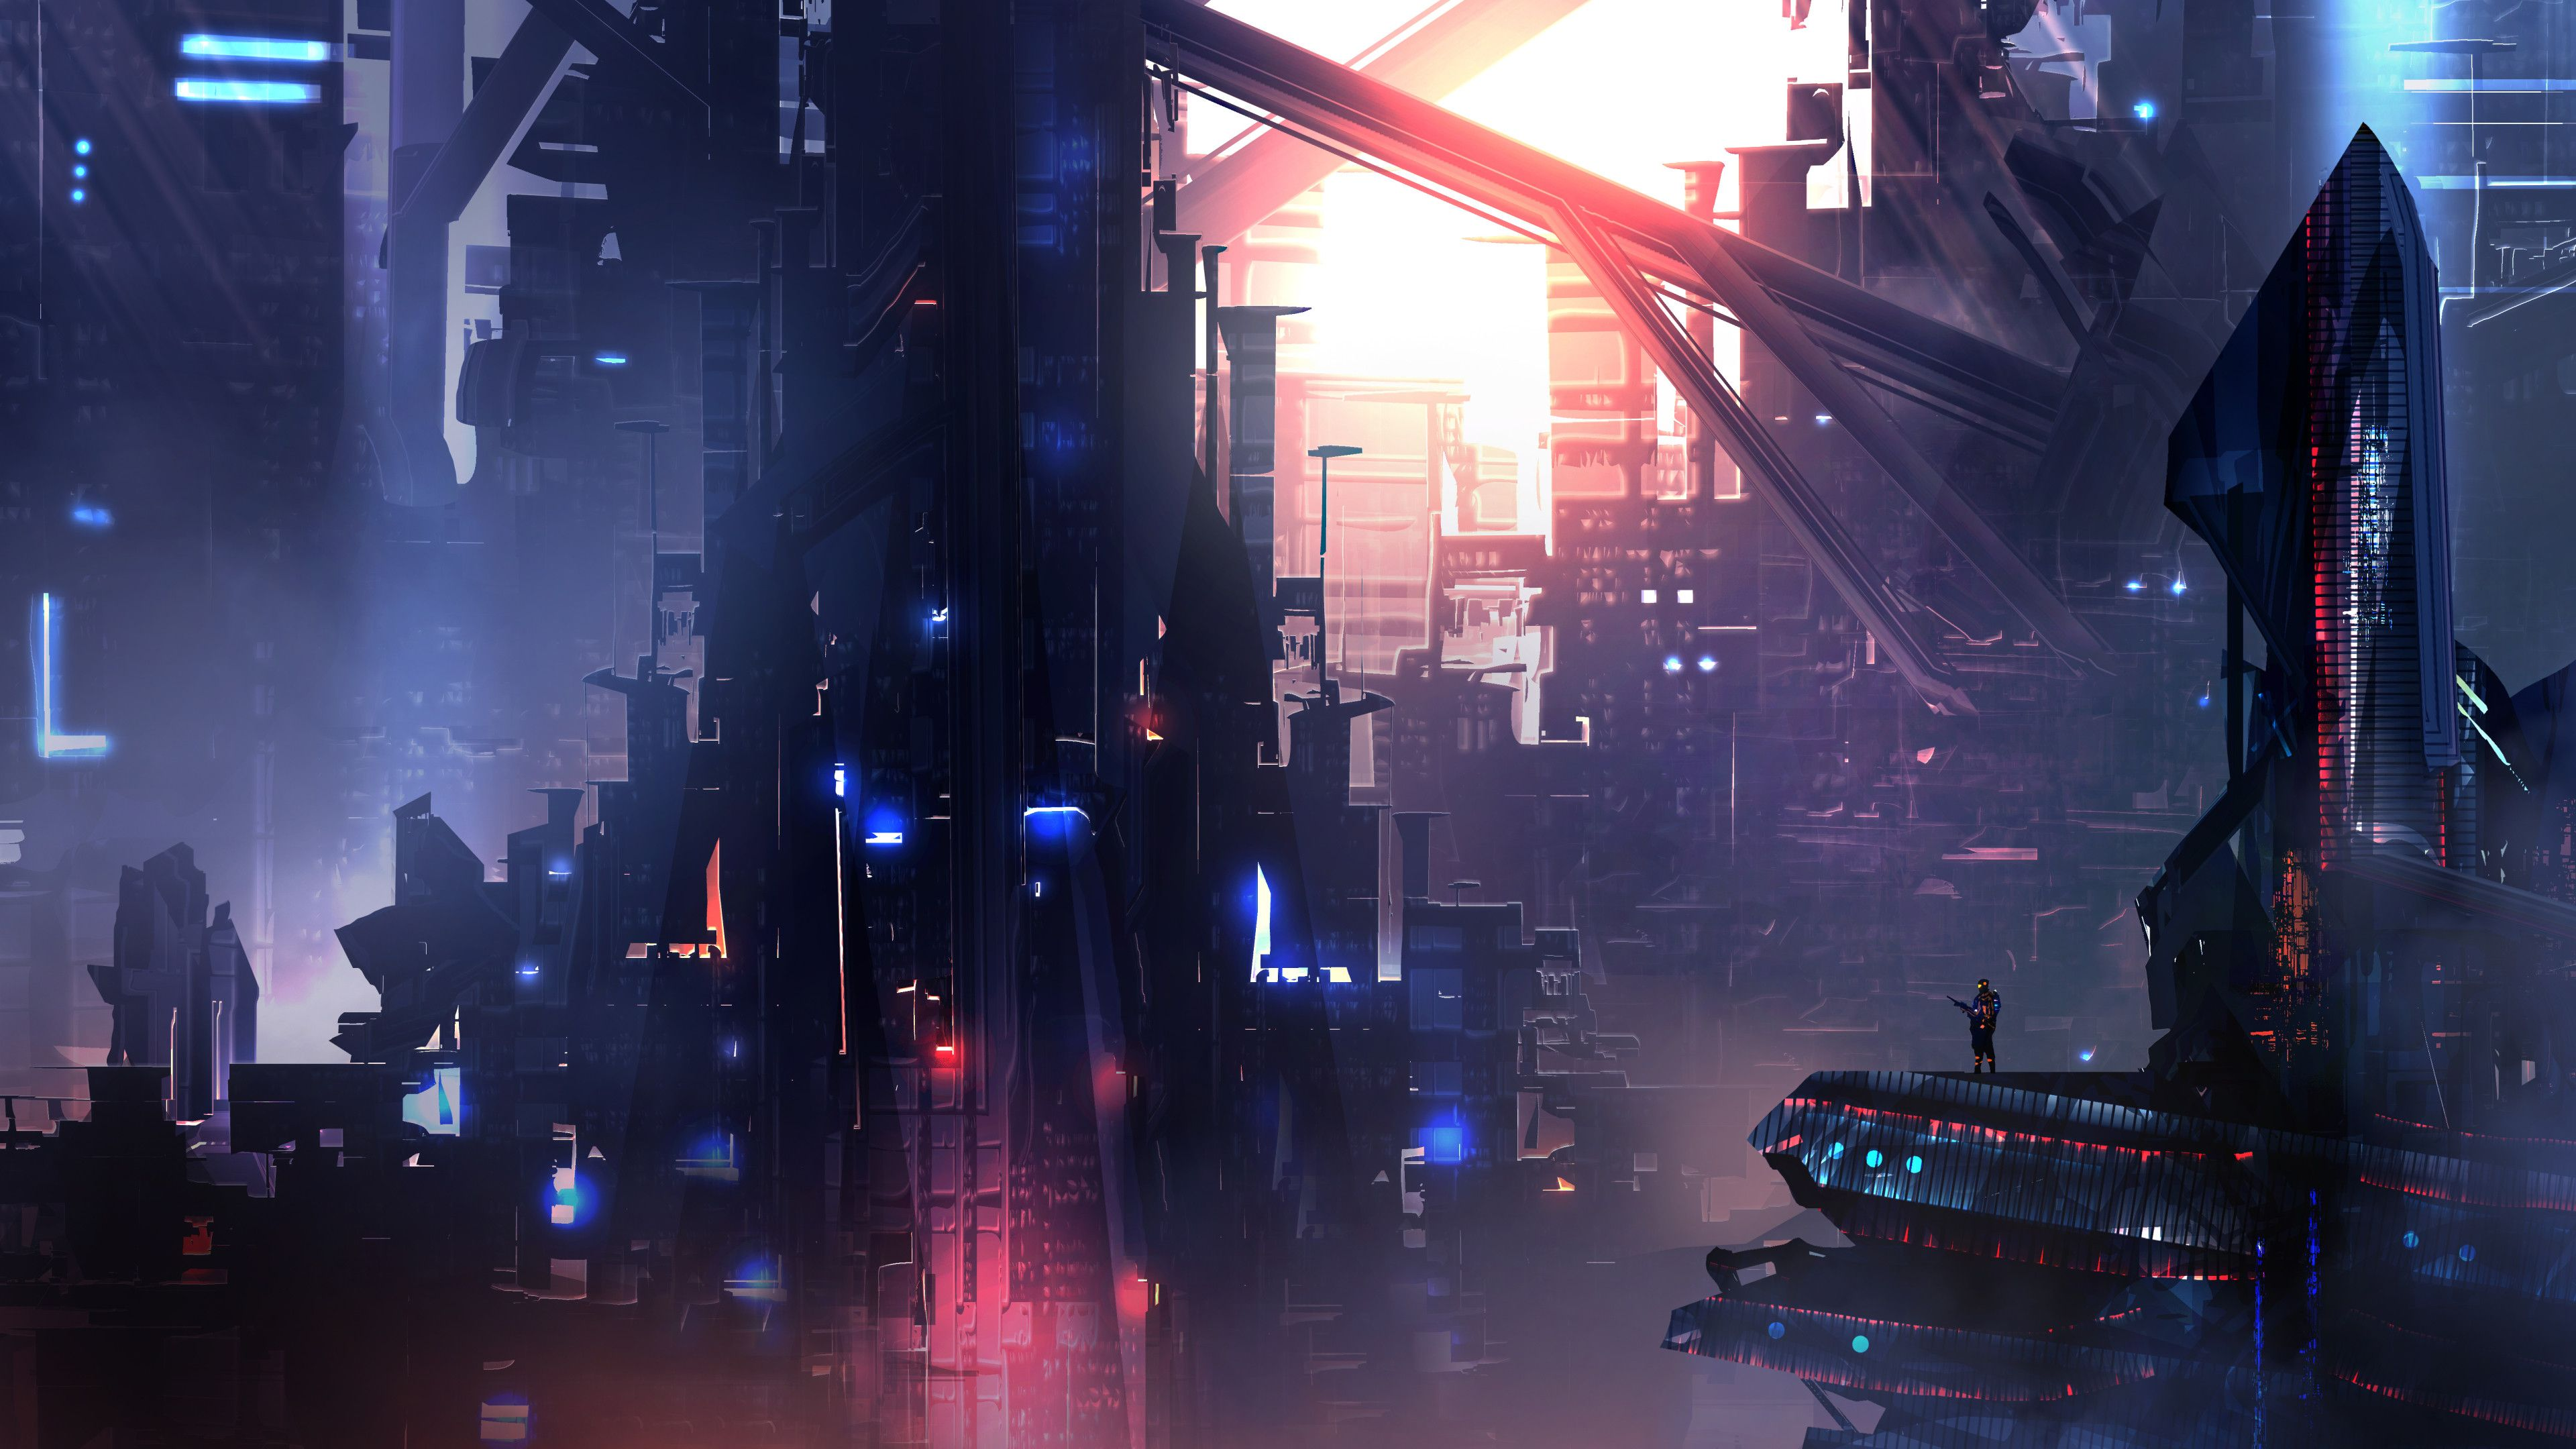 4k Sci-fi Wallpaper Dump | Sweet Sci-fi Stuff | Pinterest | Cyberpunk, Cyberpunk art and ...